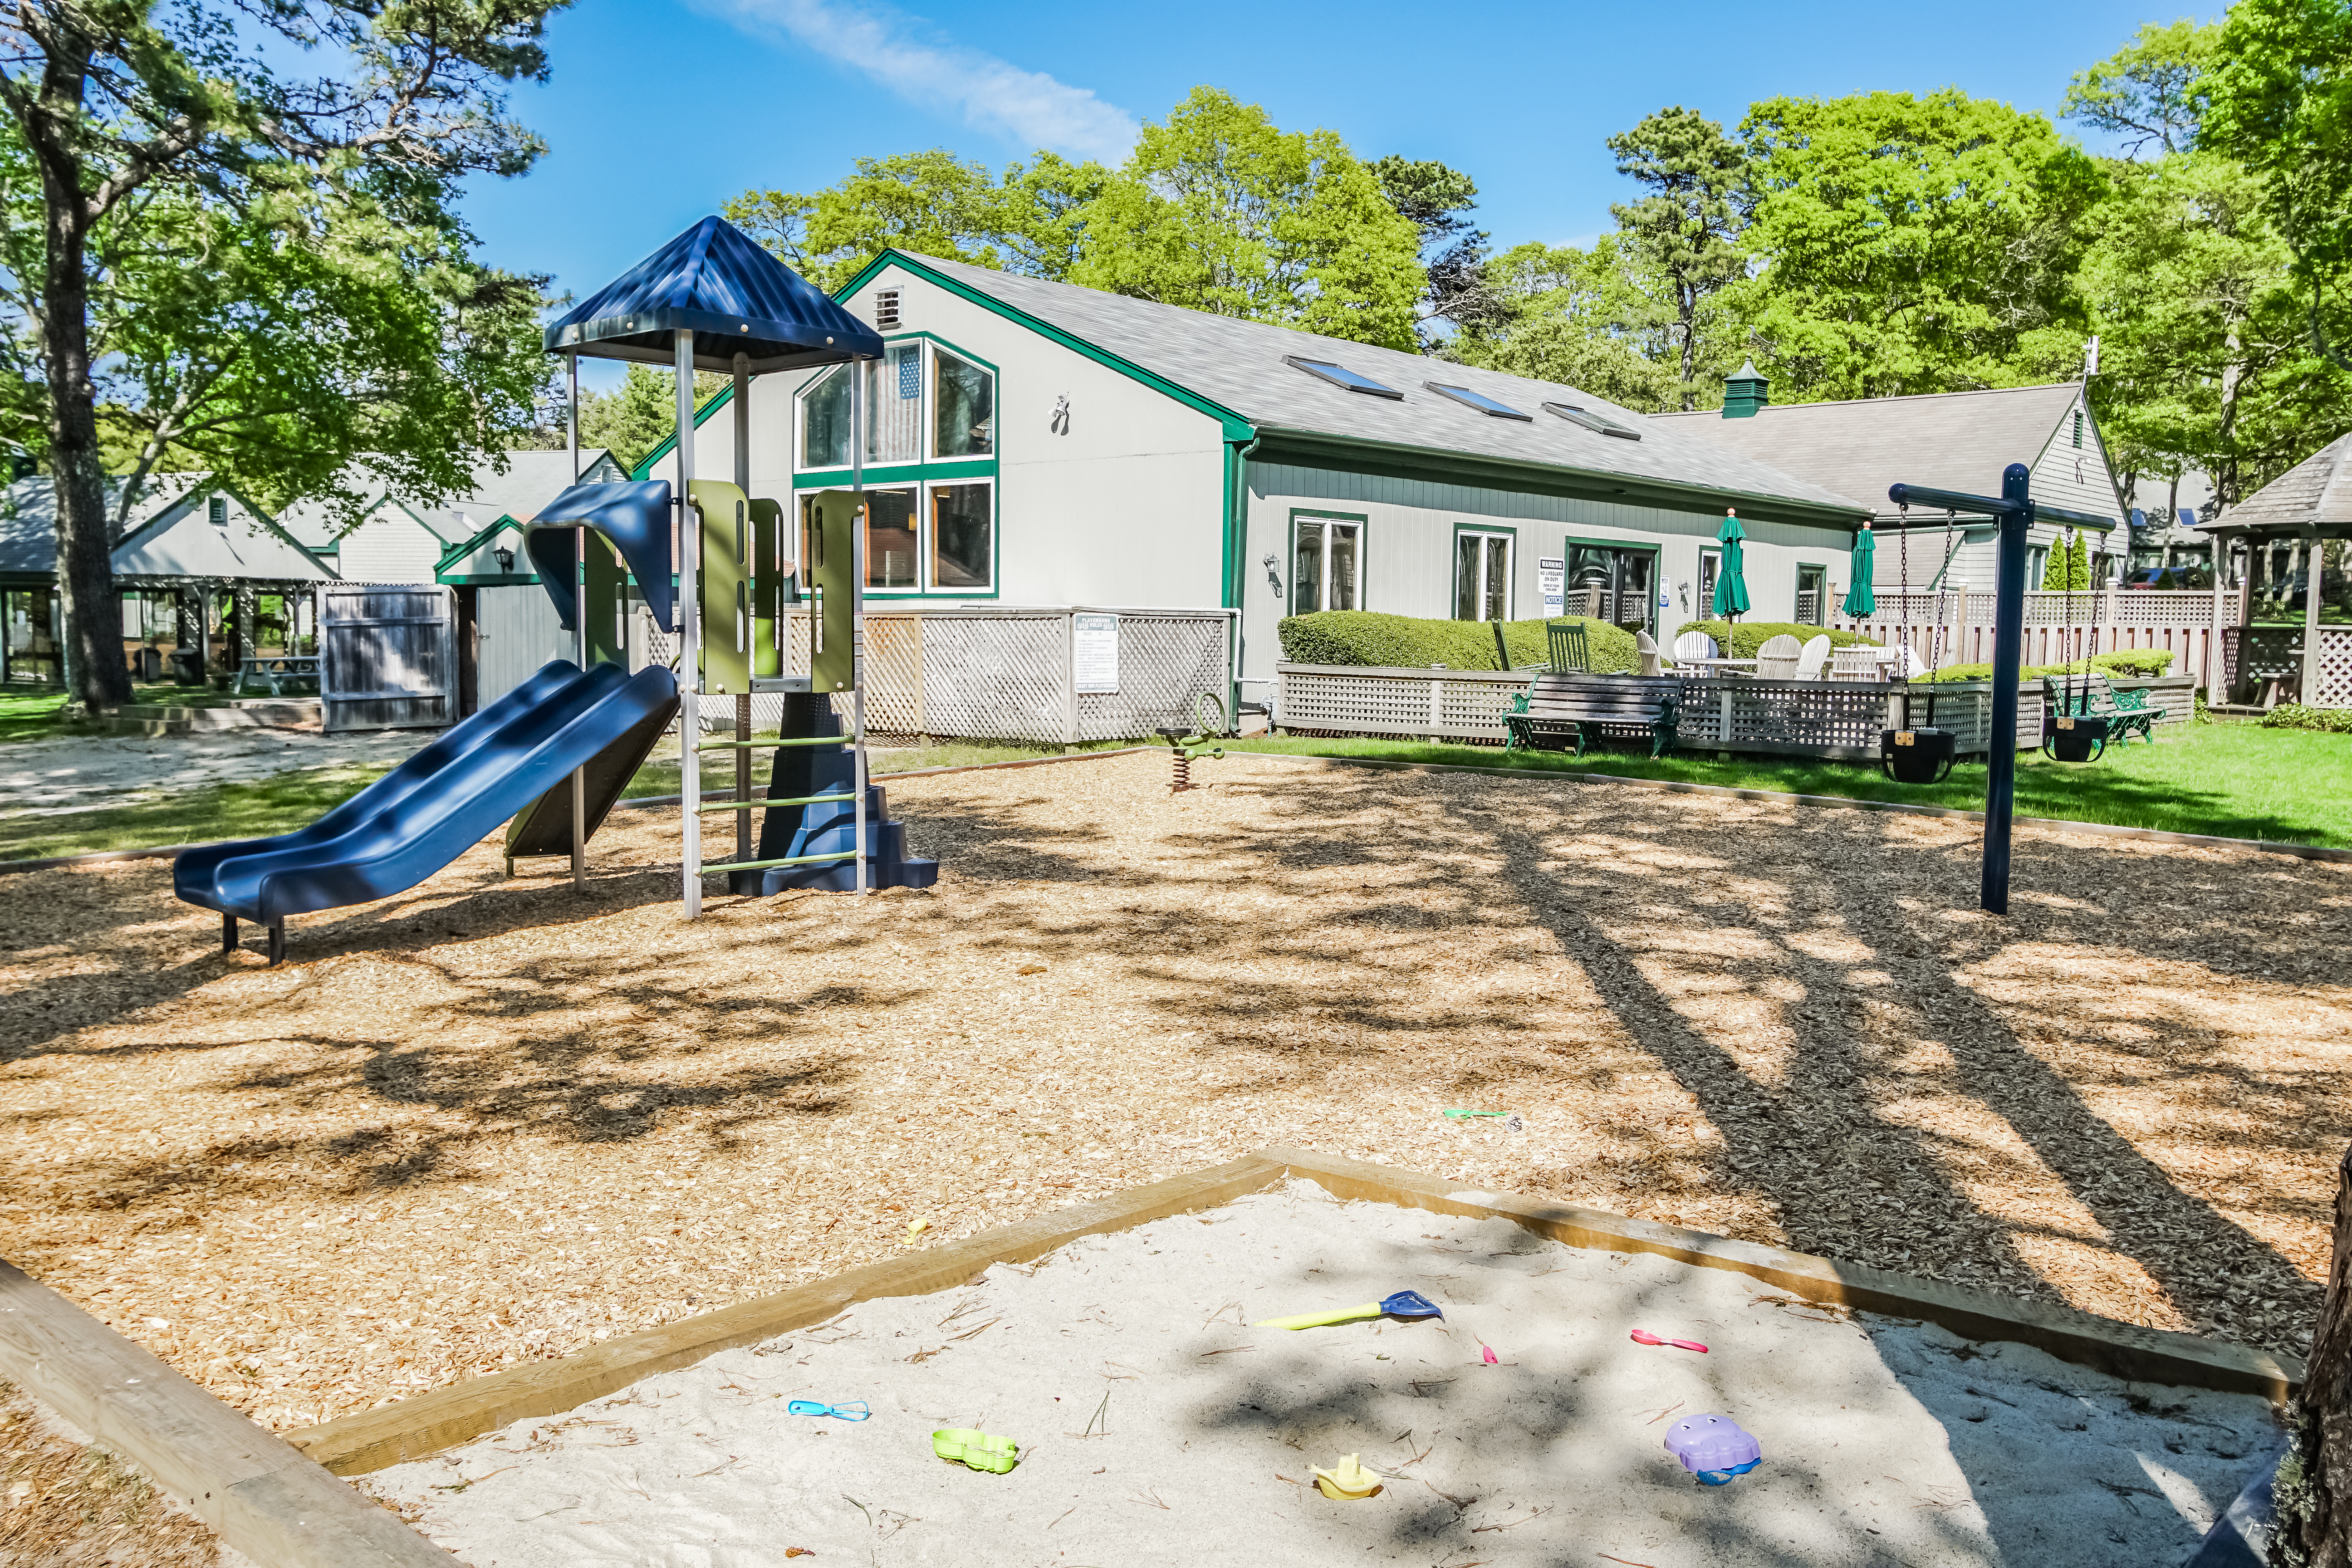 An enjoyable children's playground at VRI's Cape Cod Holiday Estates in Massachusetts.